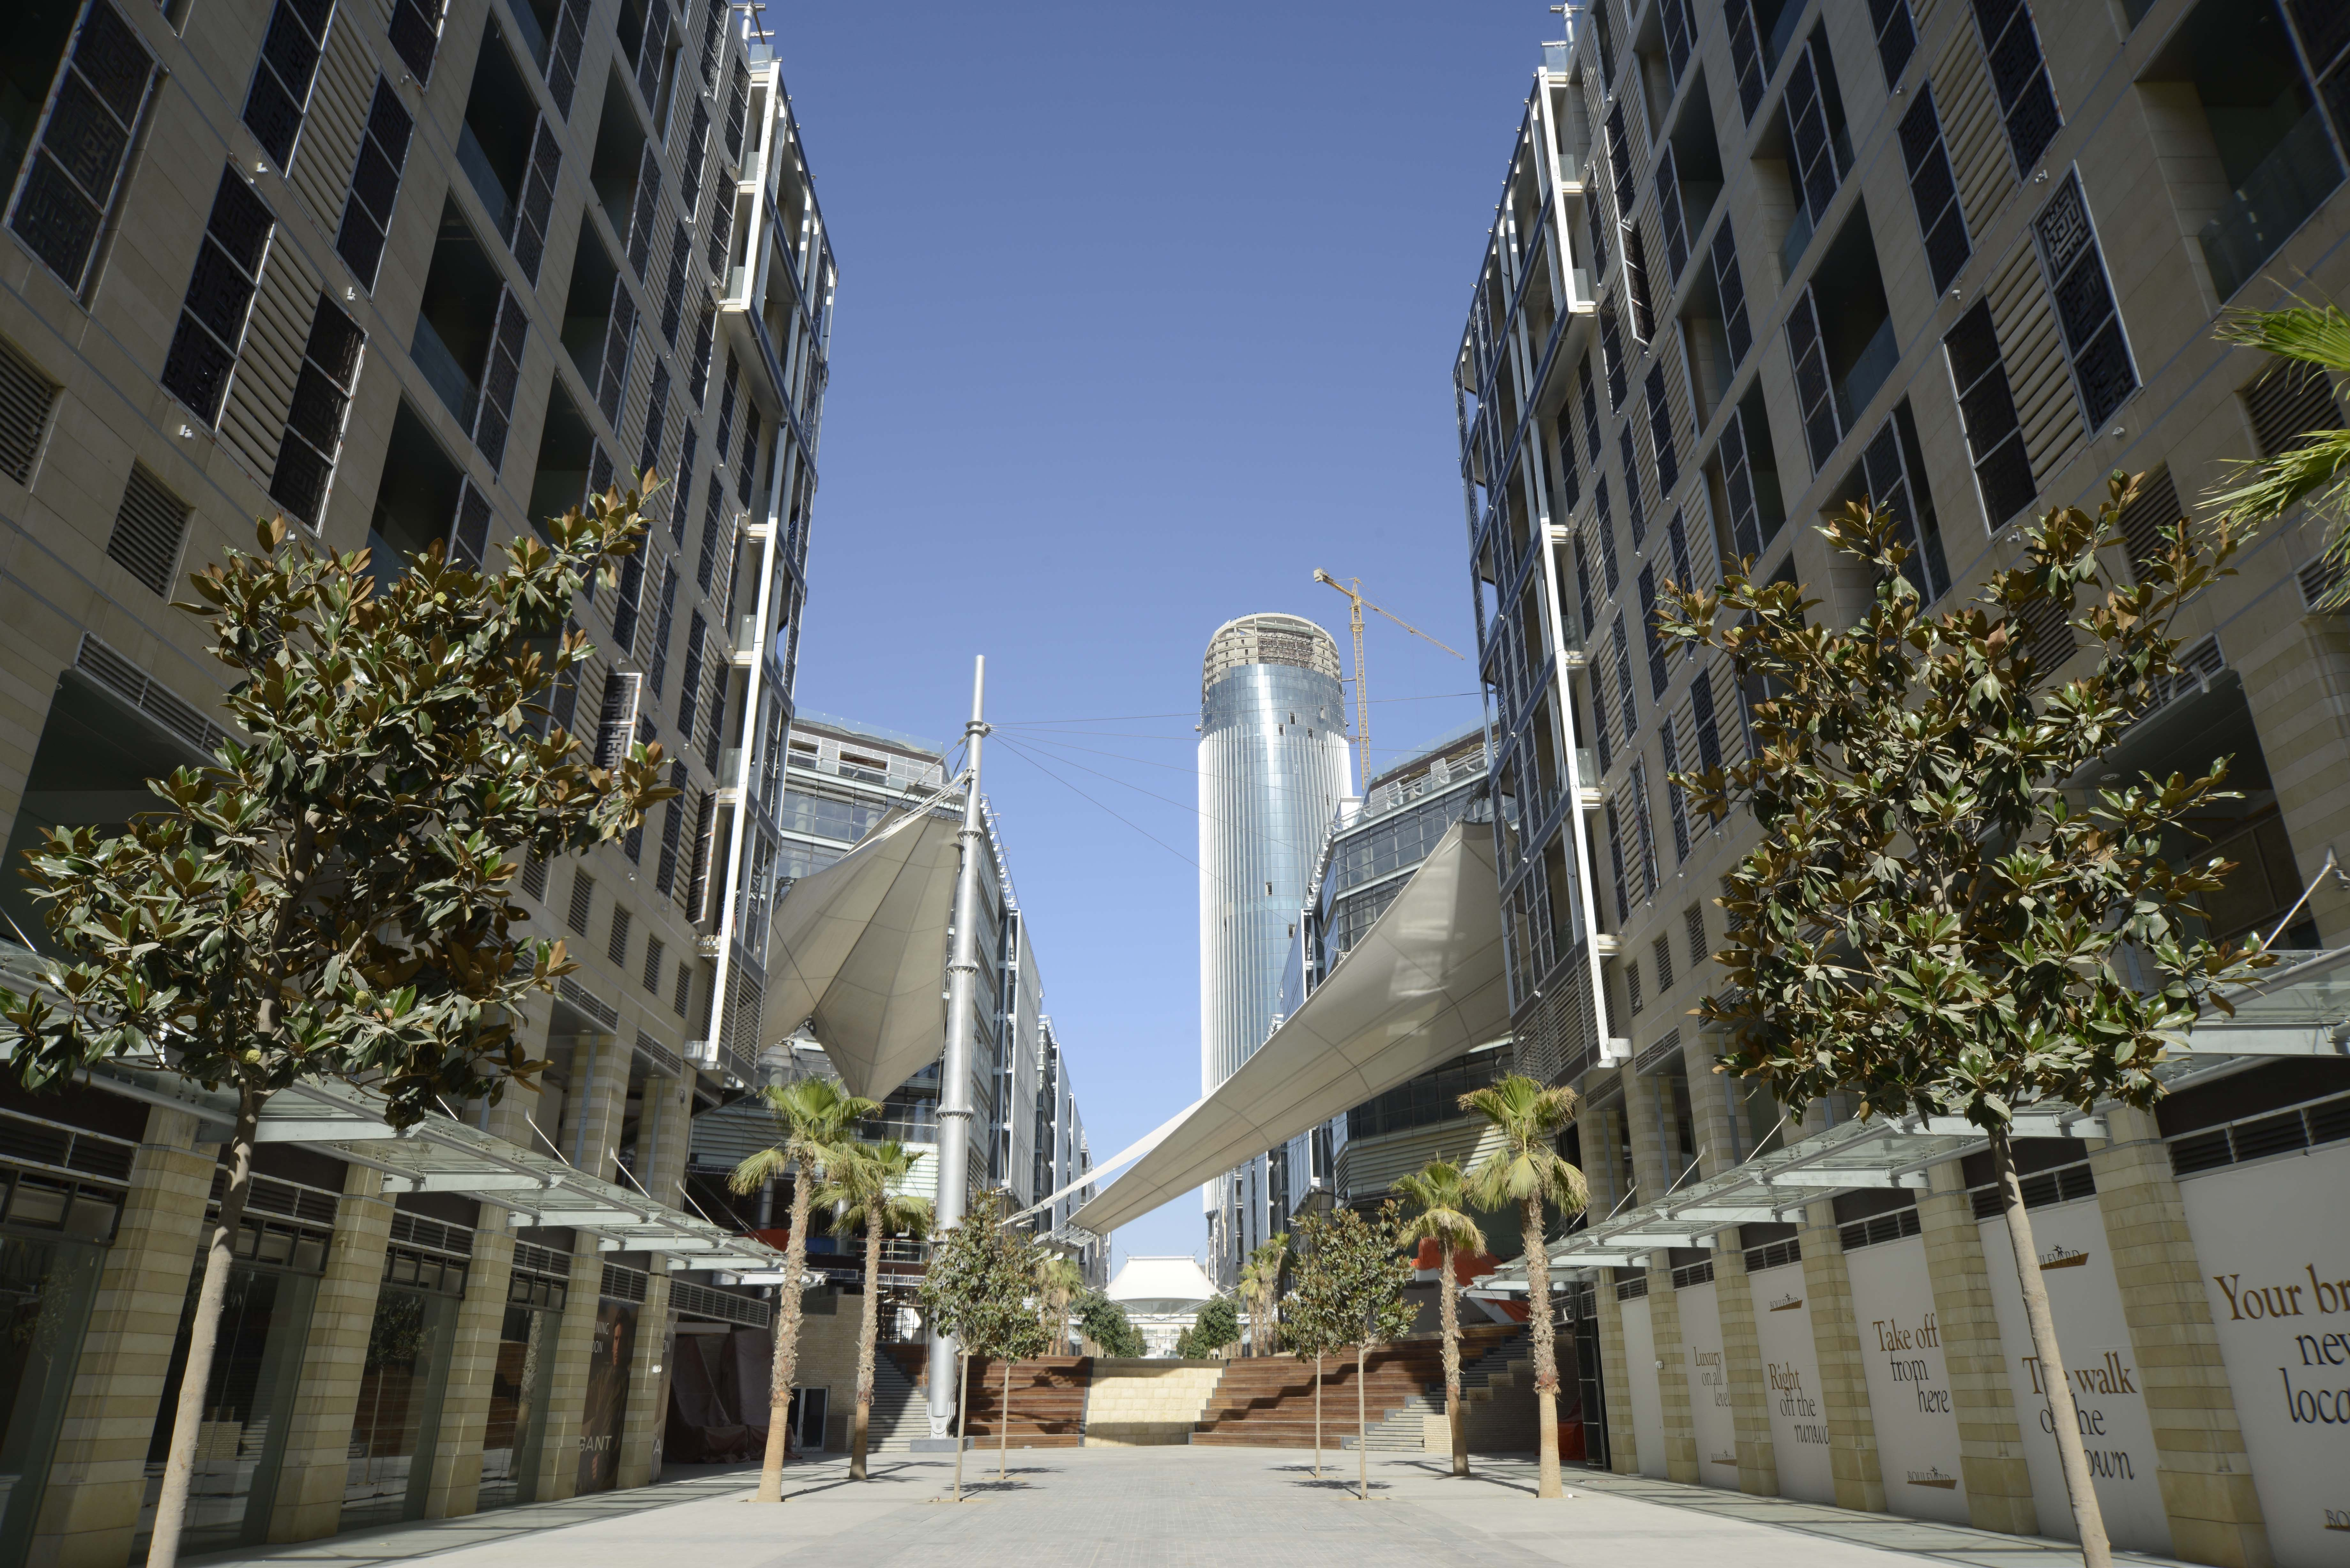 The Abdali Boulevard Masar United Contracting Co